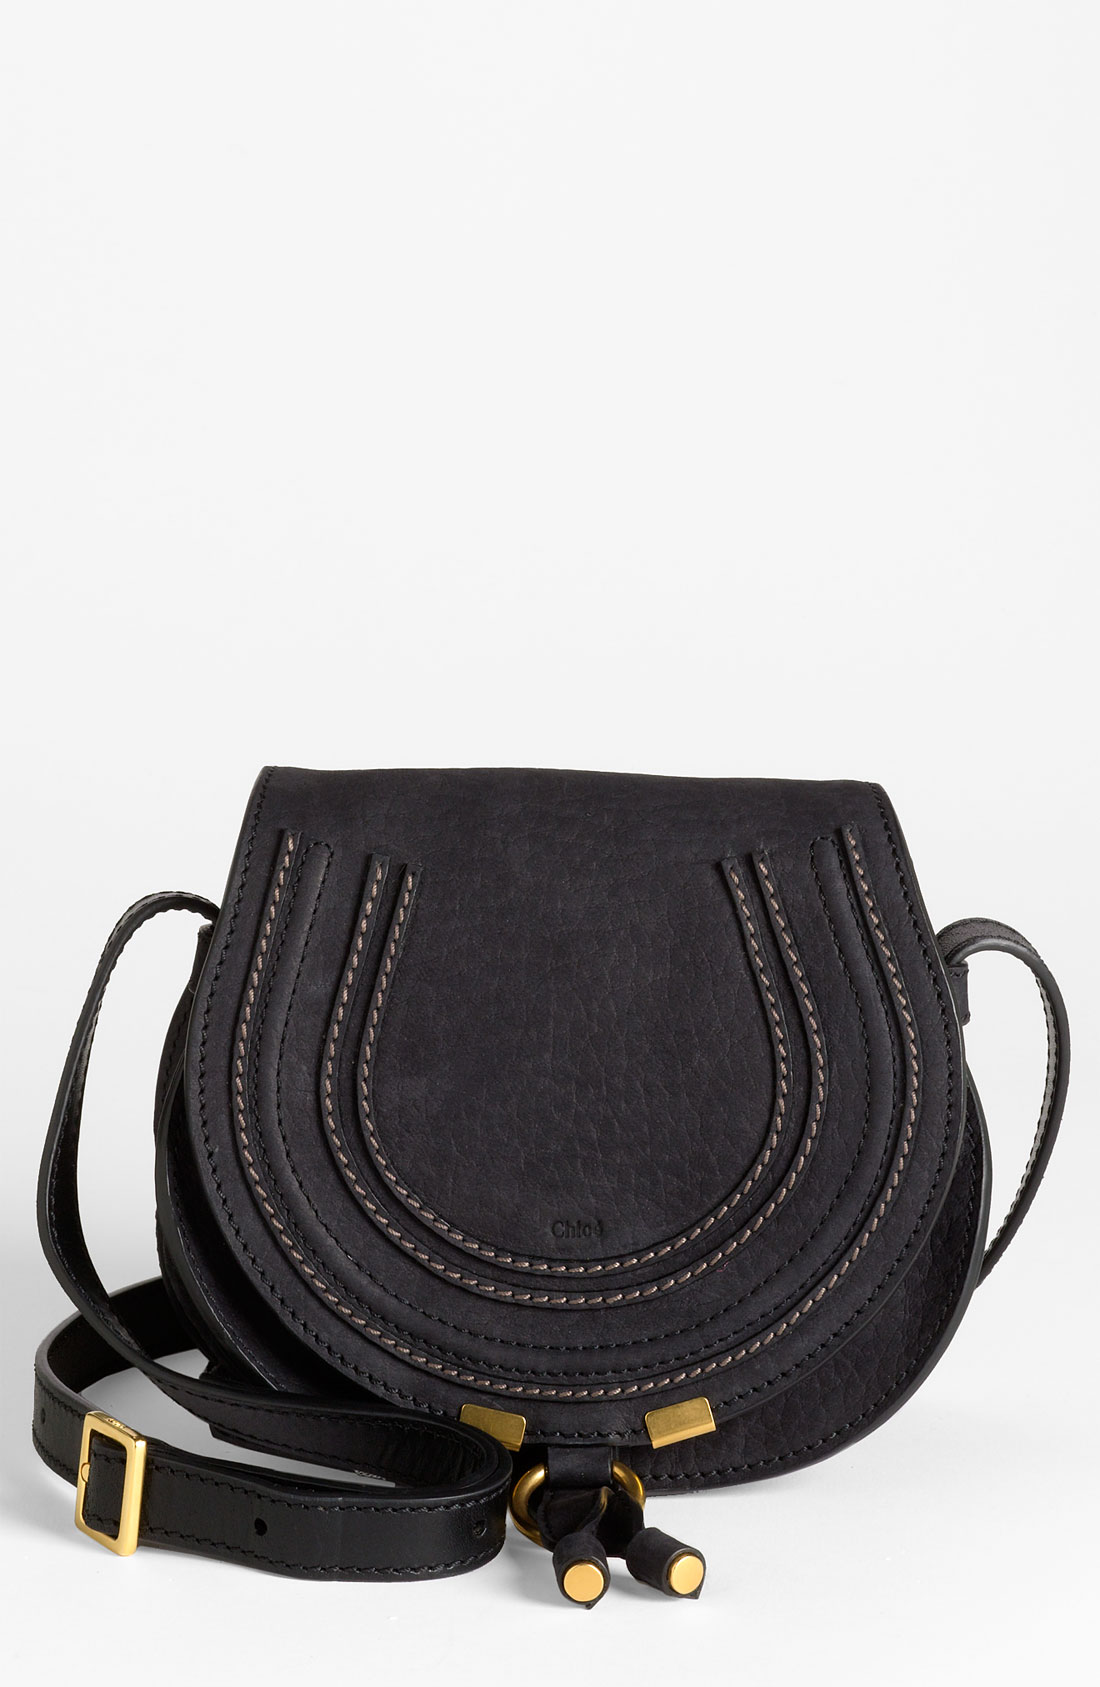 chlo marcie crossbody bag in black lyst. Black Bedroom Furniture Sets. Home Design Ideas